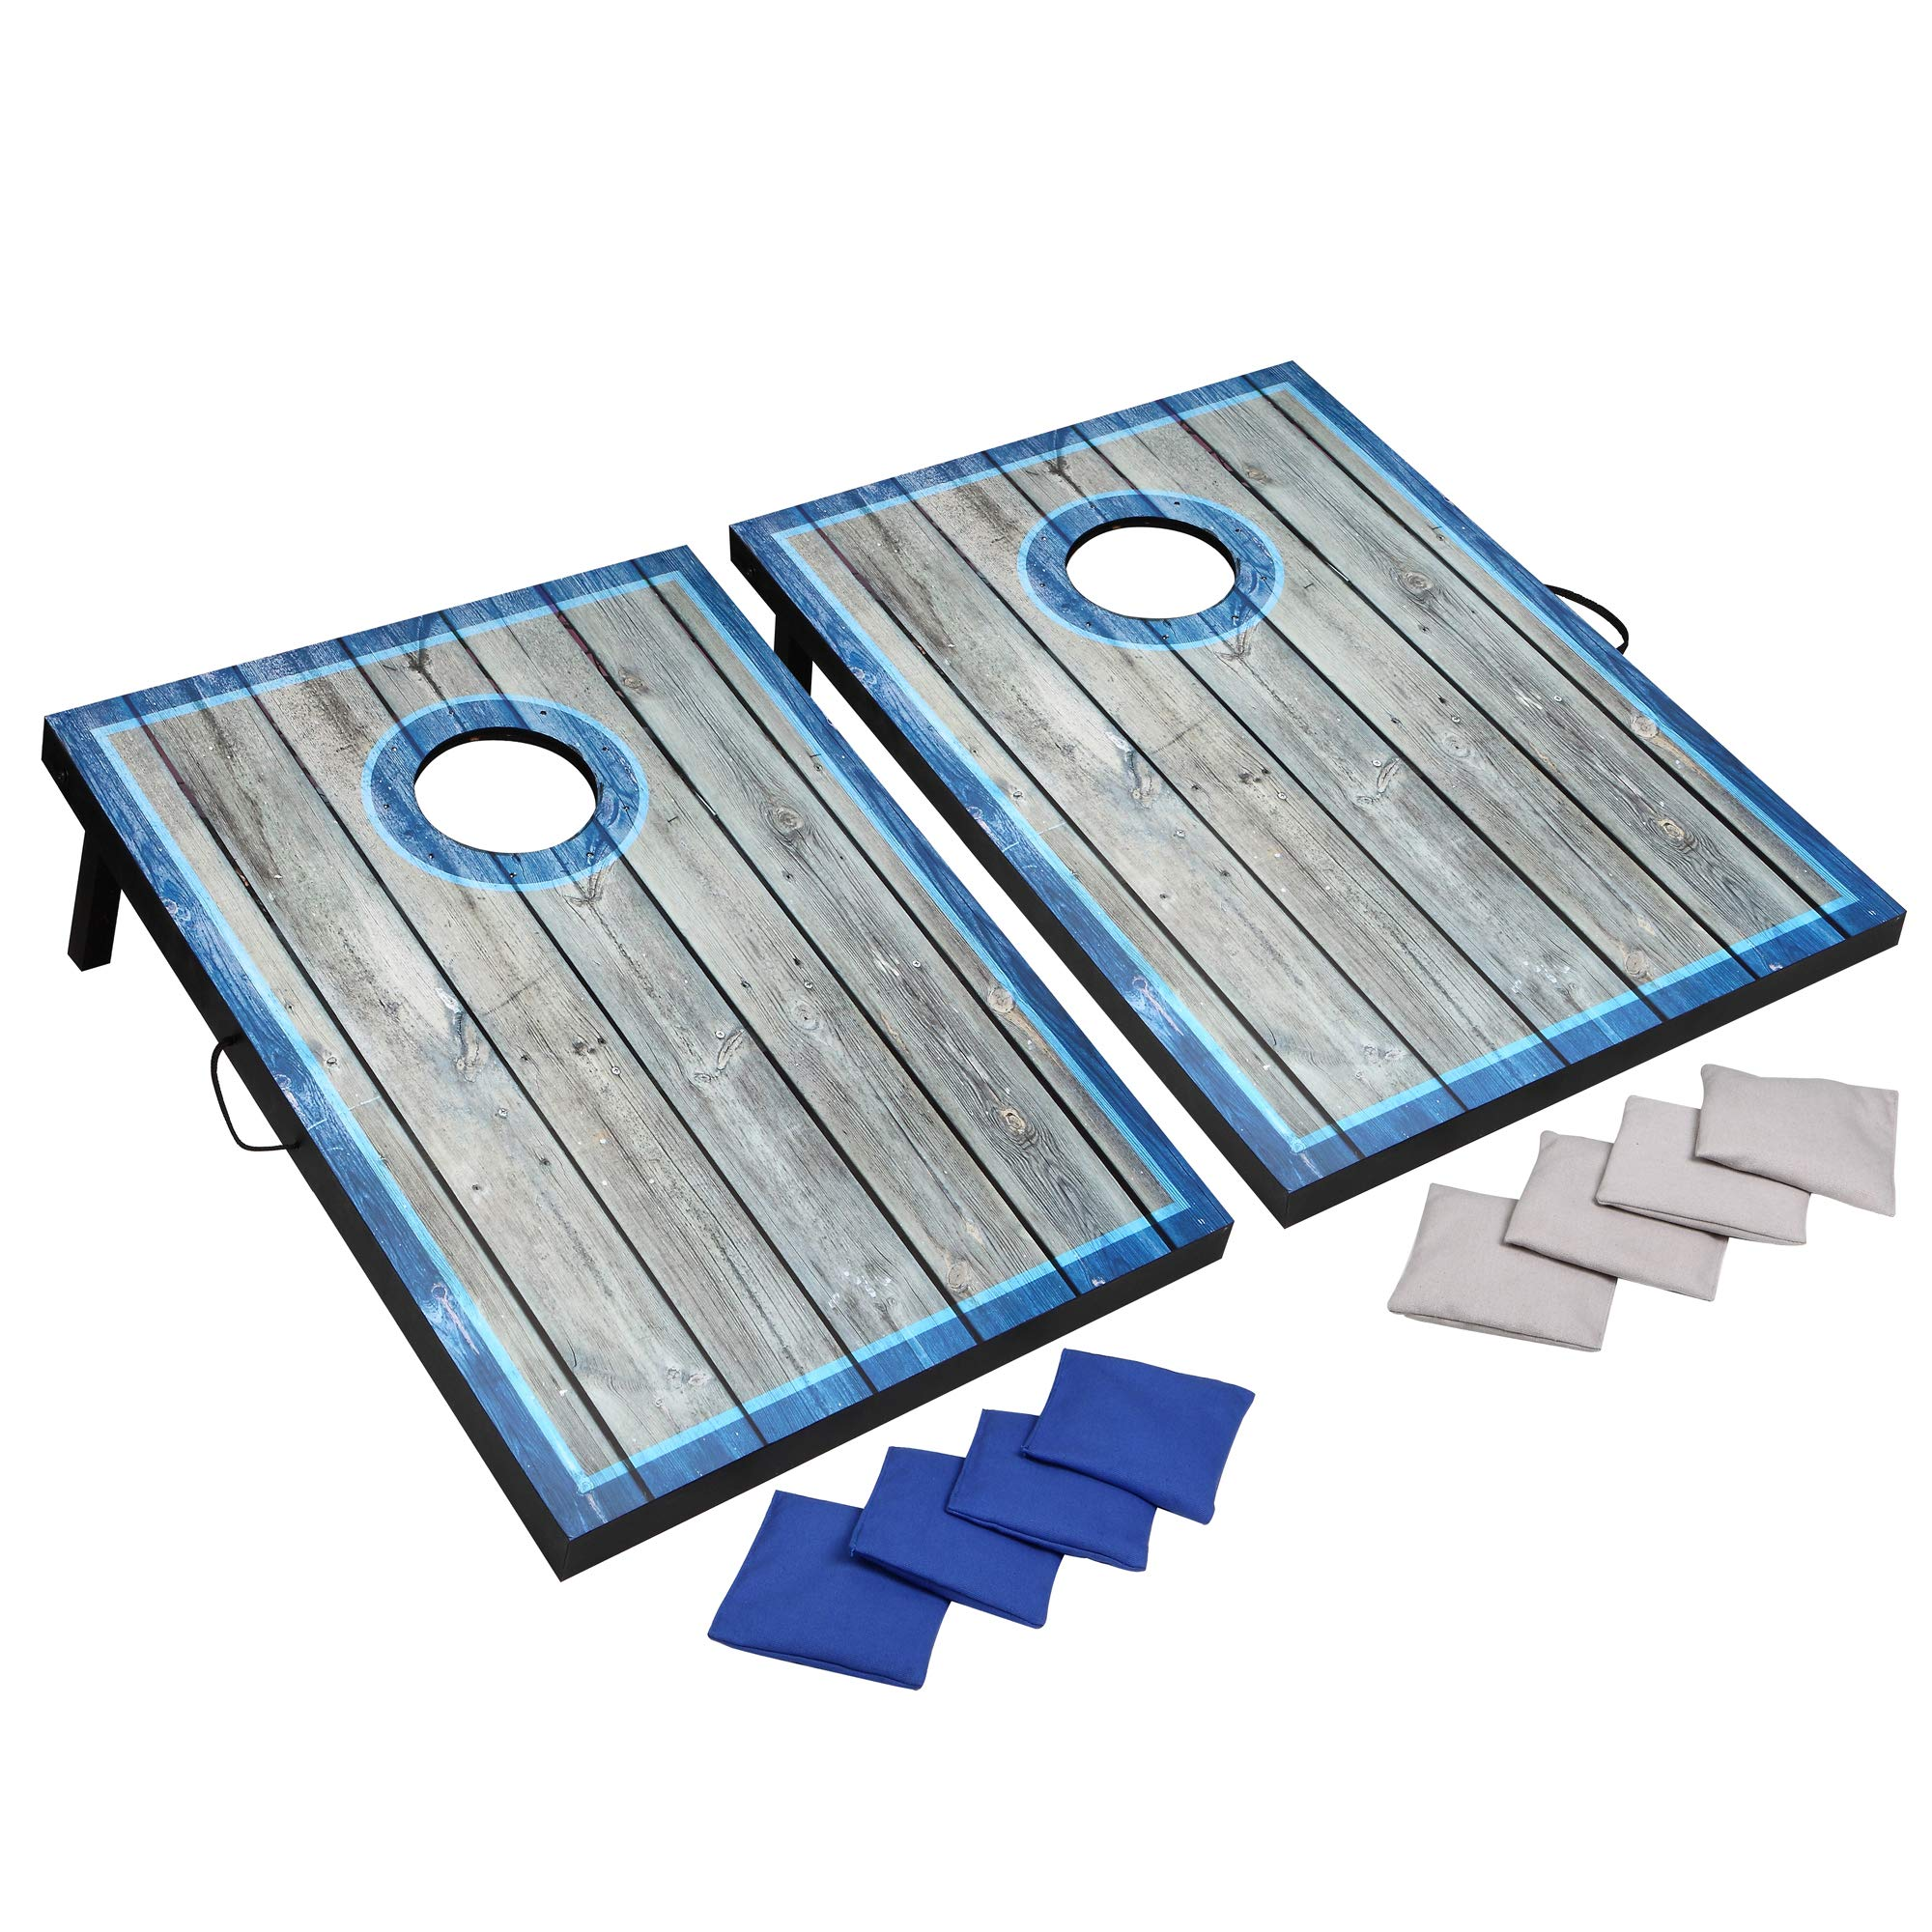 Hathaway LED Cornhole Set with Rustic Target Boards & 8 Bean Toss Bags, Lighted Target Areas, Carry Handles for Portability - Blue/White by Hathaway